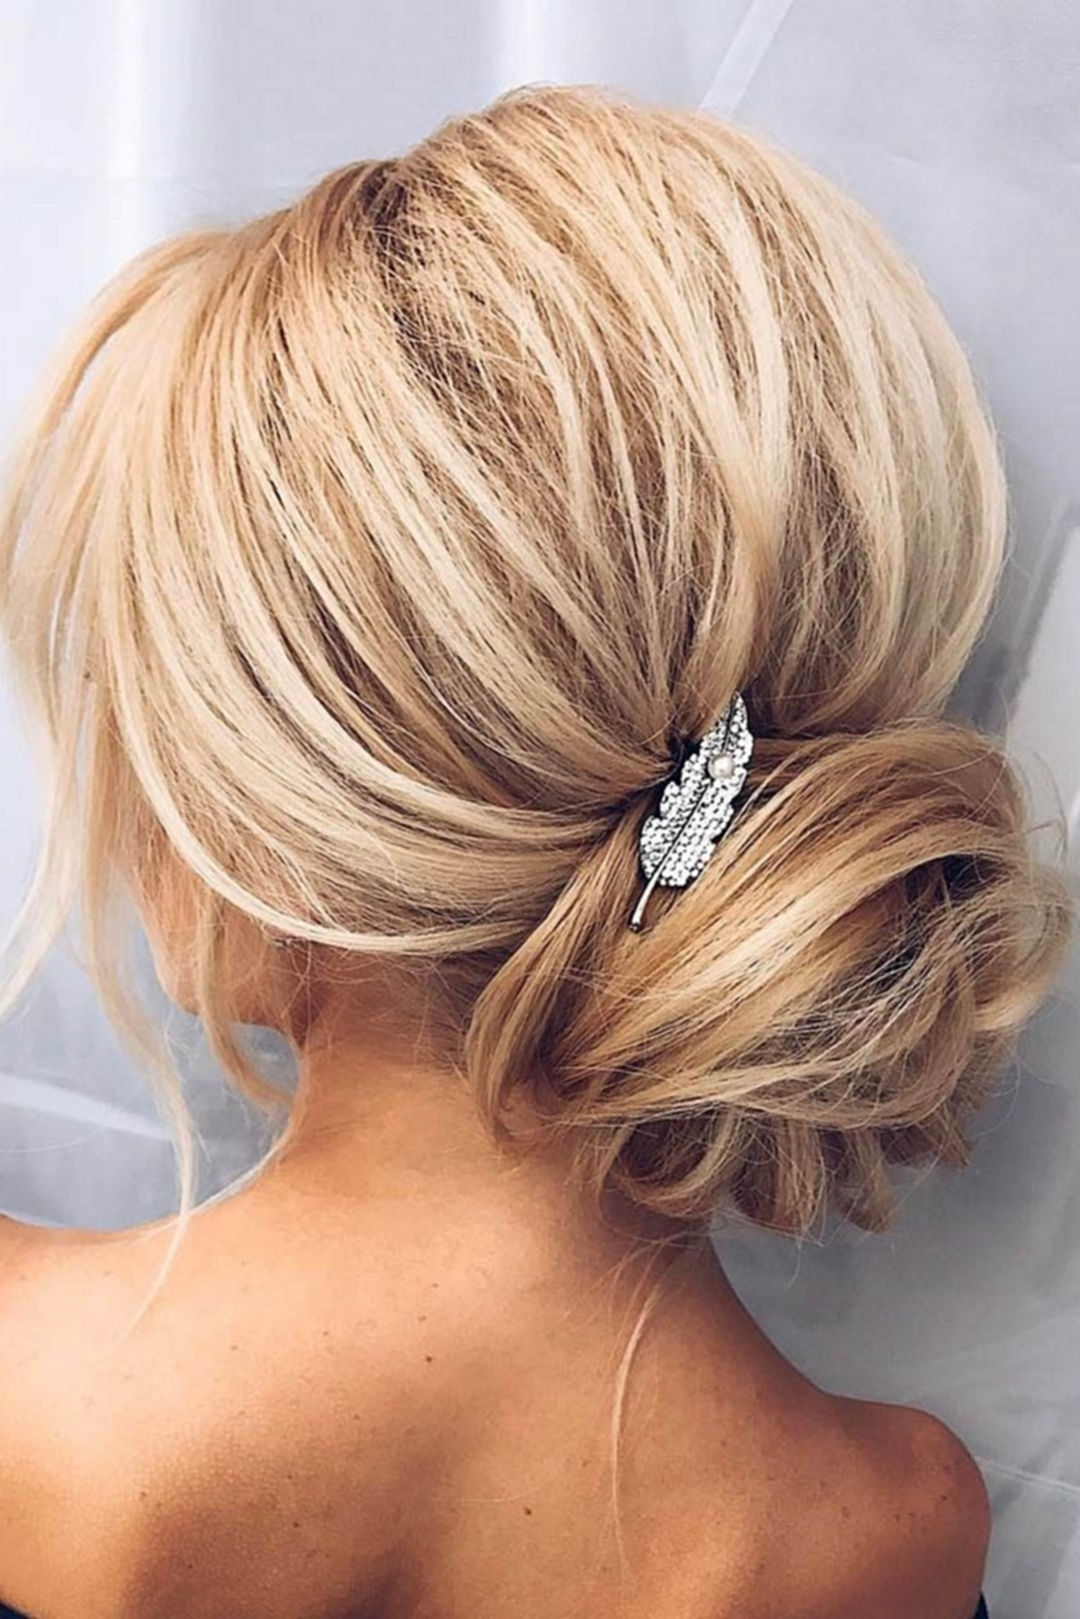 60+ Wonderful Bridesmaid Updo Hairstyles | Bridesmaid Updo In Bridesmaid Updo Hairstyles (View 3 of 15)